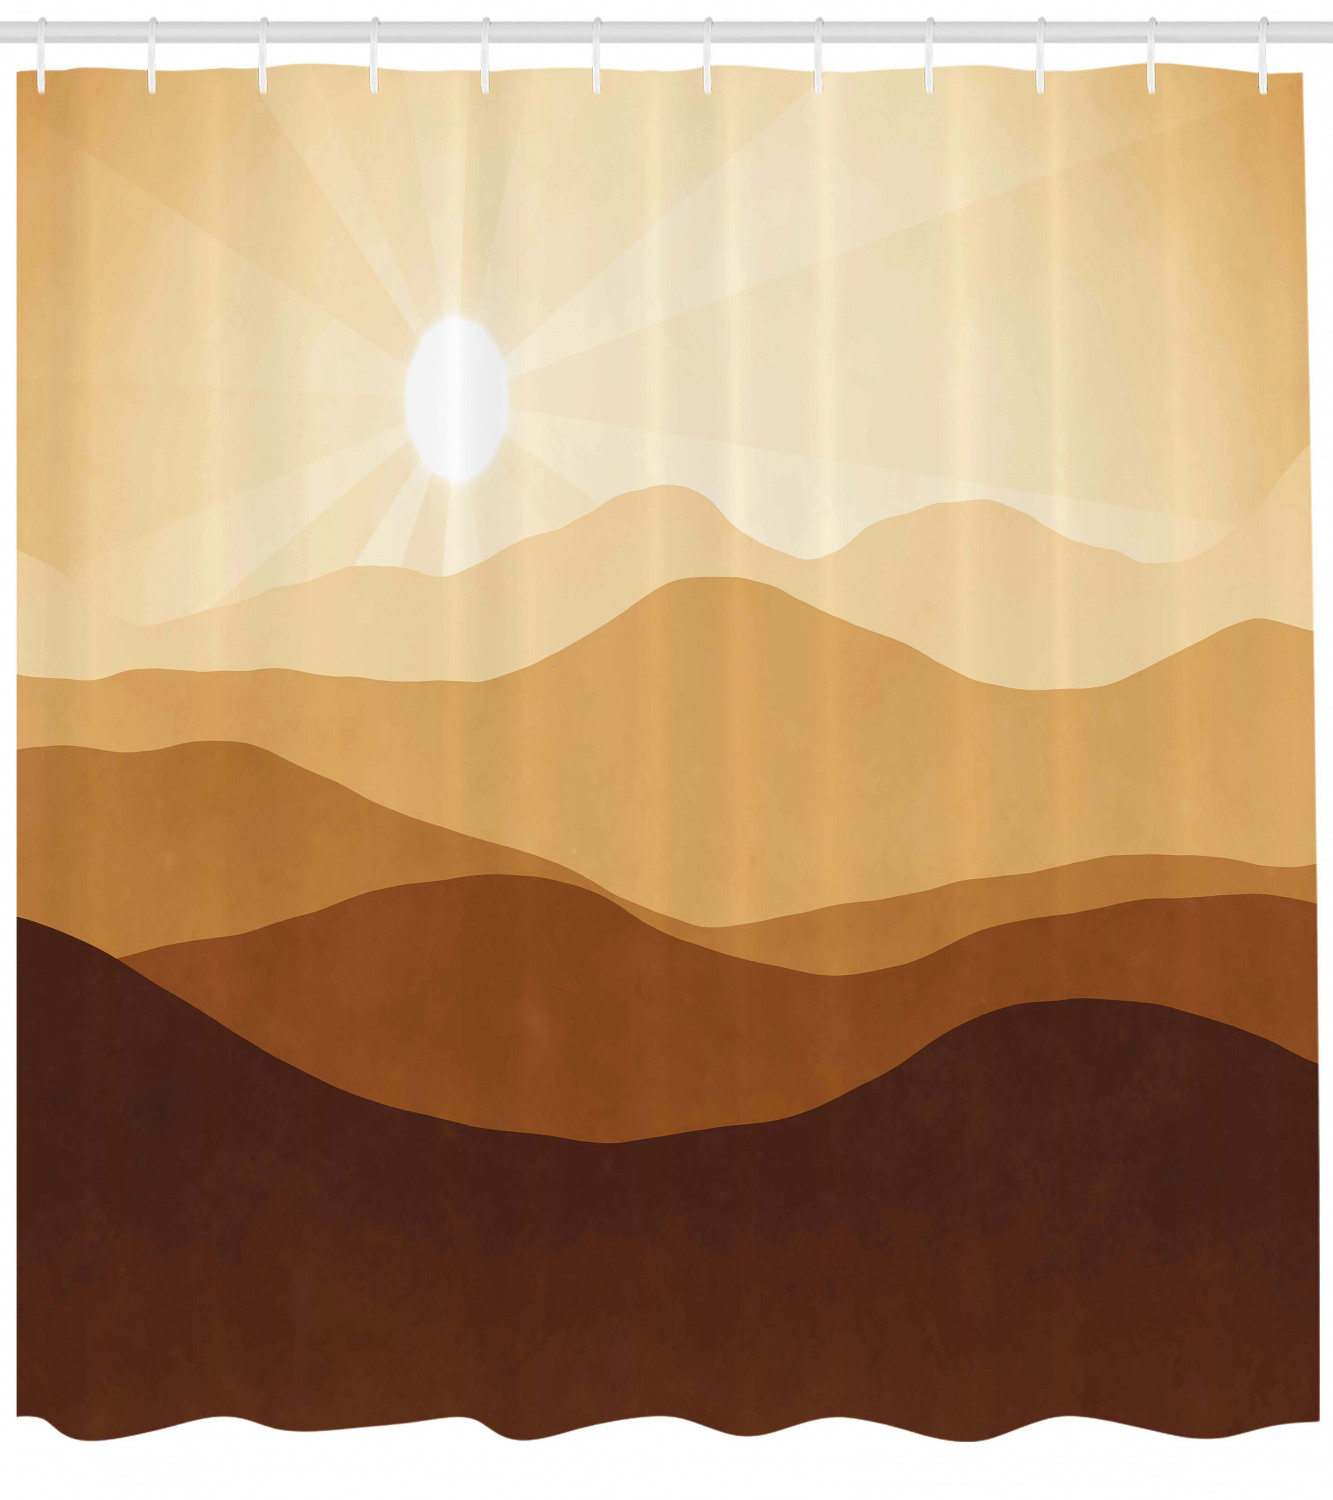 Tan Shower Curtain Sunrise Over The Mountains Conceptual Landscape Hills Rays Scenery Fabric Bathroom Set With Hooks Brown Pale Brown Sand Brown